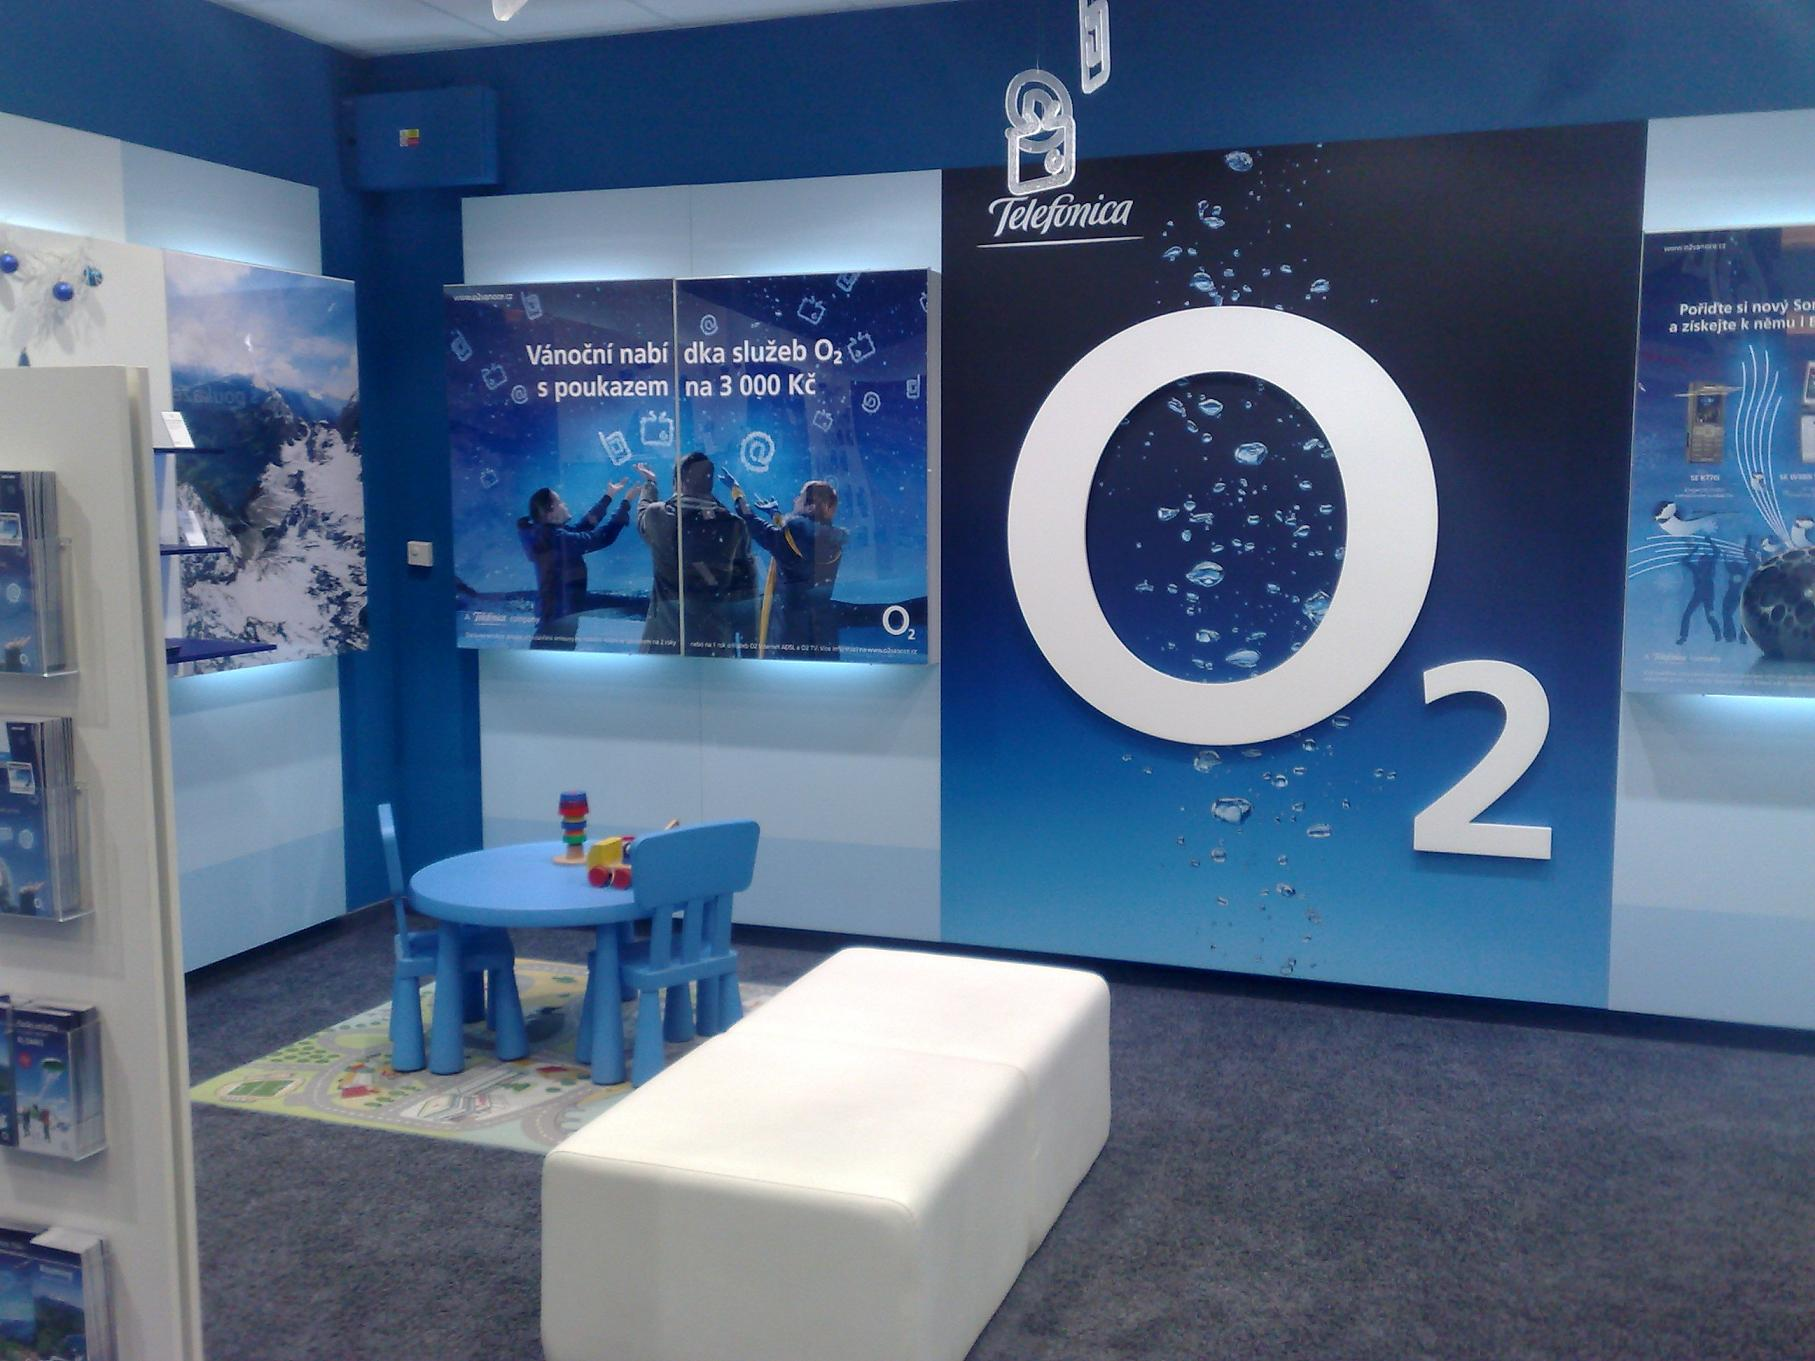 O2's Last Gasp For Air? Says It Will Spend Hundreds of Millions in 2010 on Its Network.